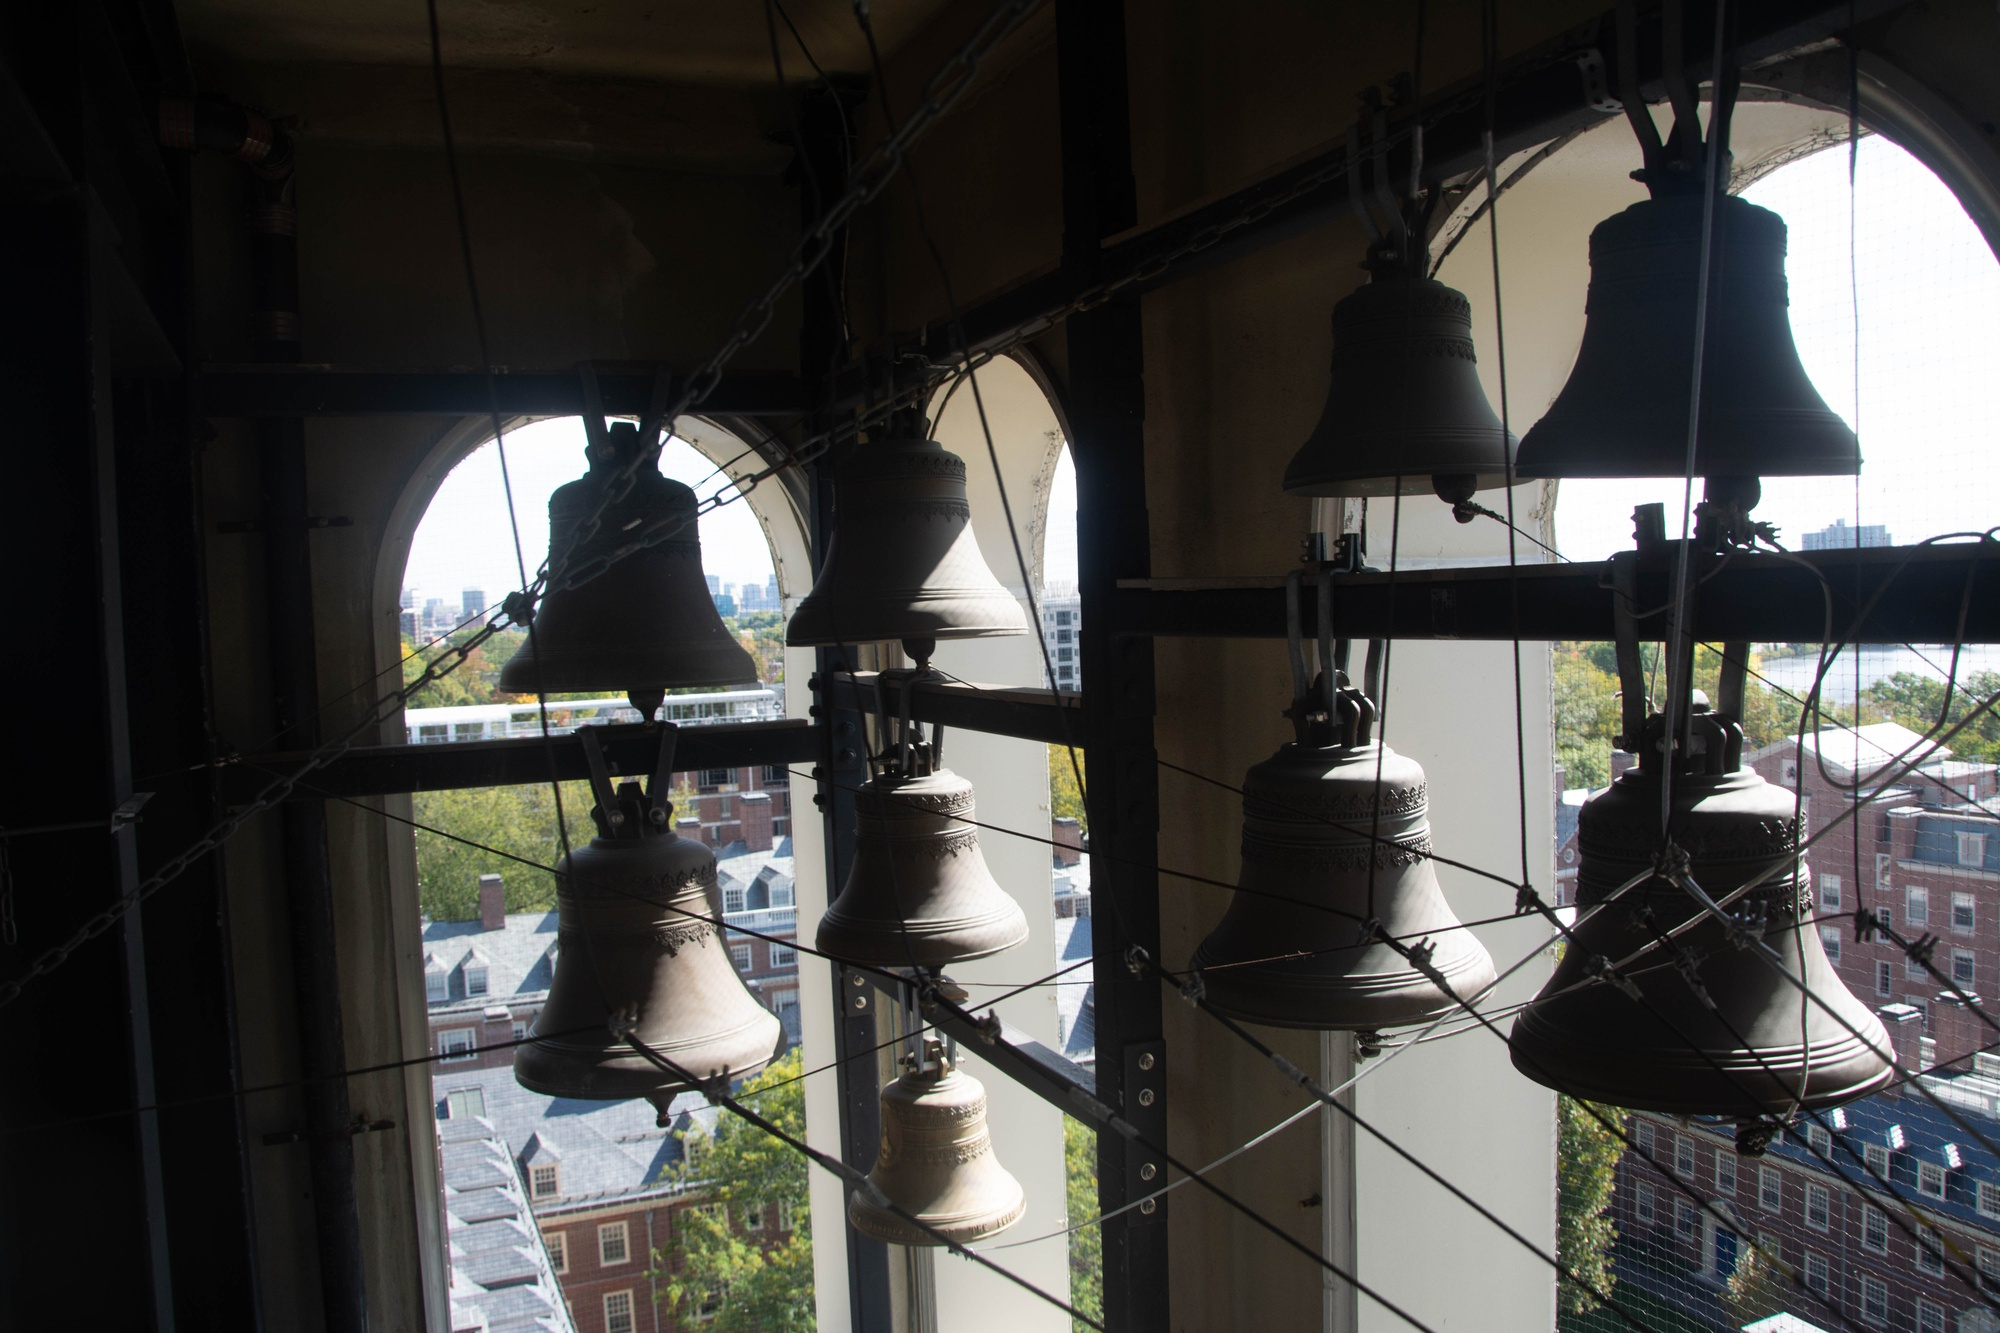 Bells in the Lowell house bell tower.